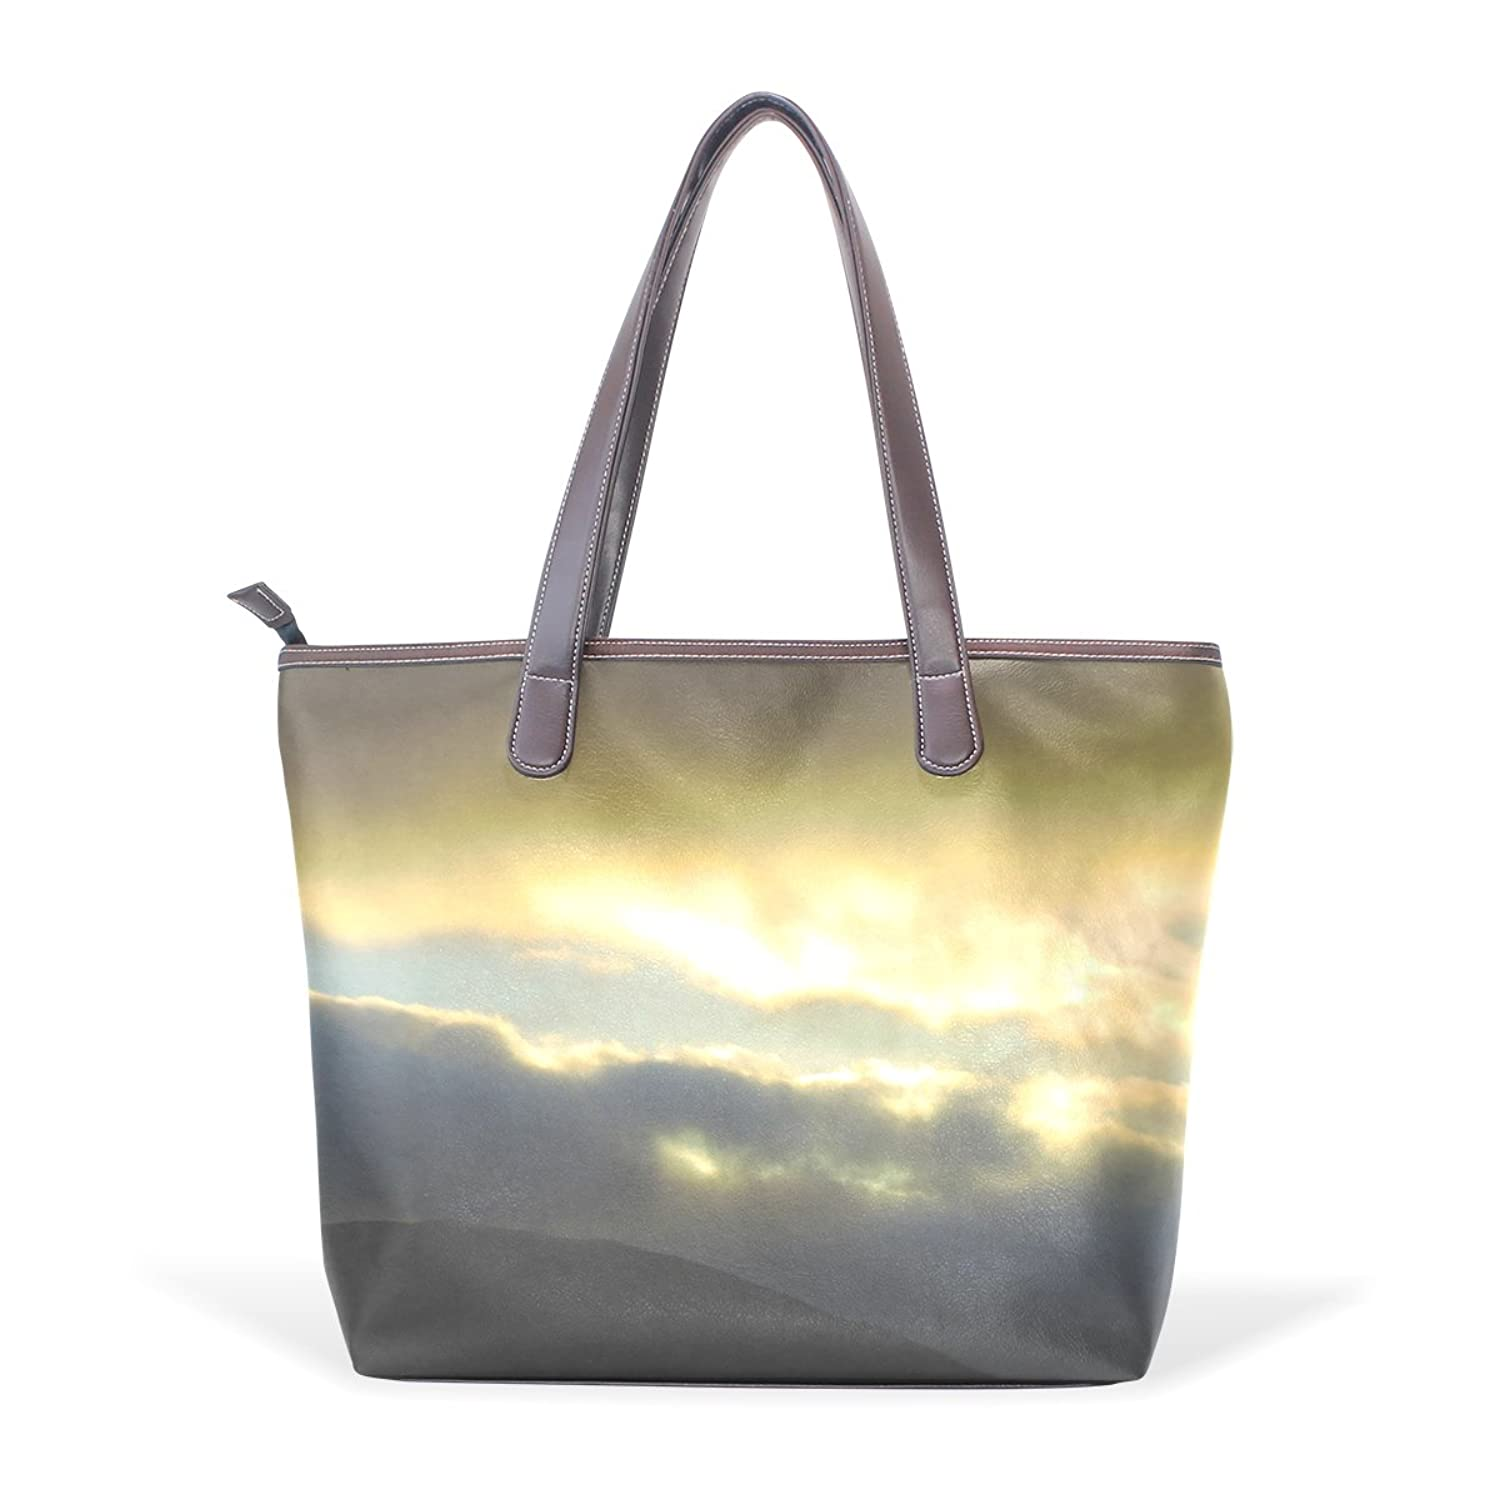 LONG S - G Beyond The Clouds PU Leather Shopping Tote Bag Zipper Bag Shoulder Bag